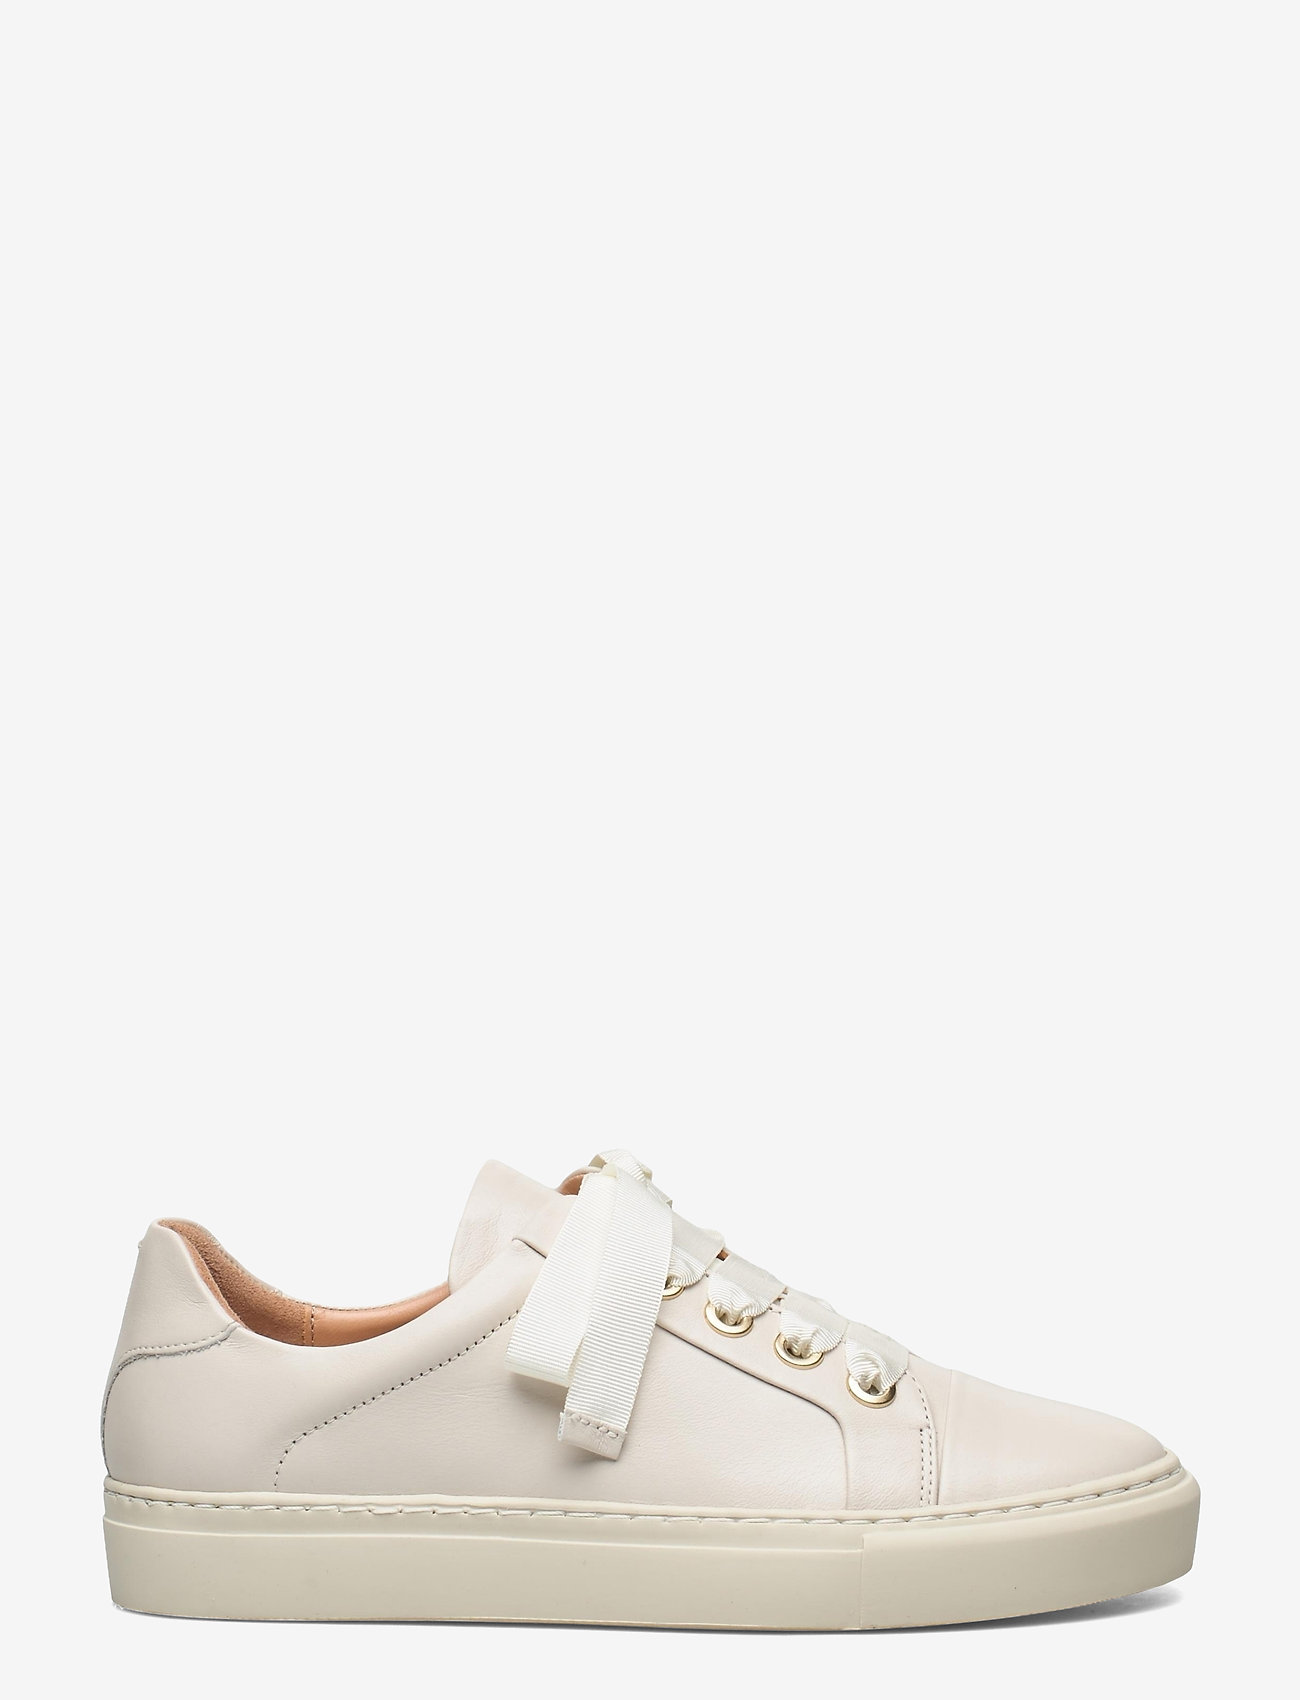 Billi Bi - Sport 24825 - låga sneakers - off white latte calf 82 - 1